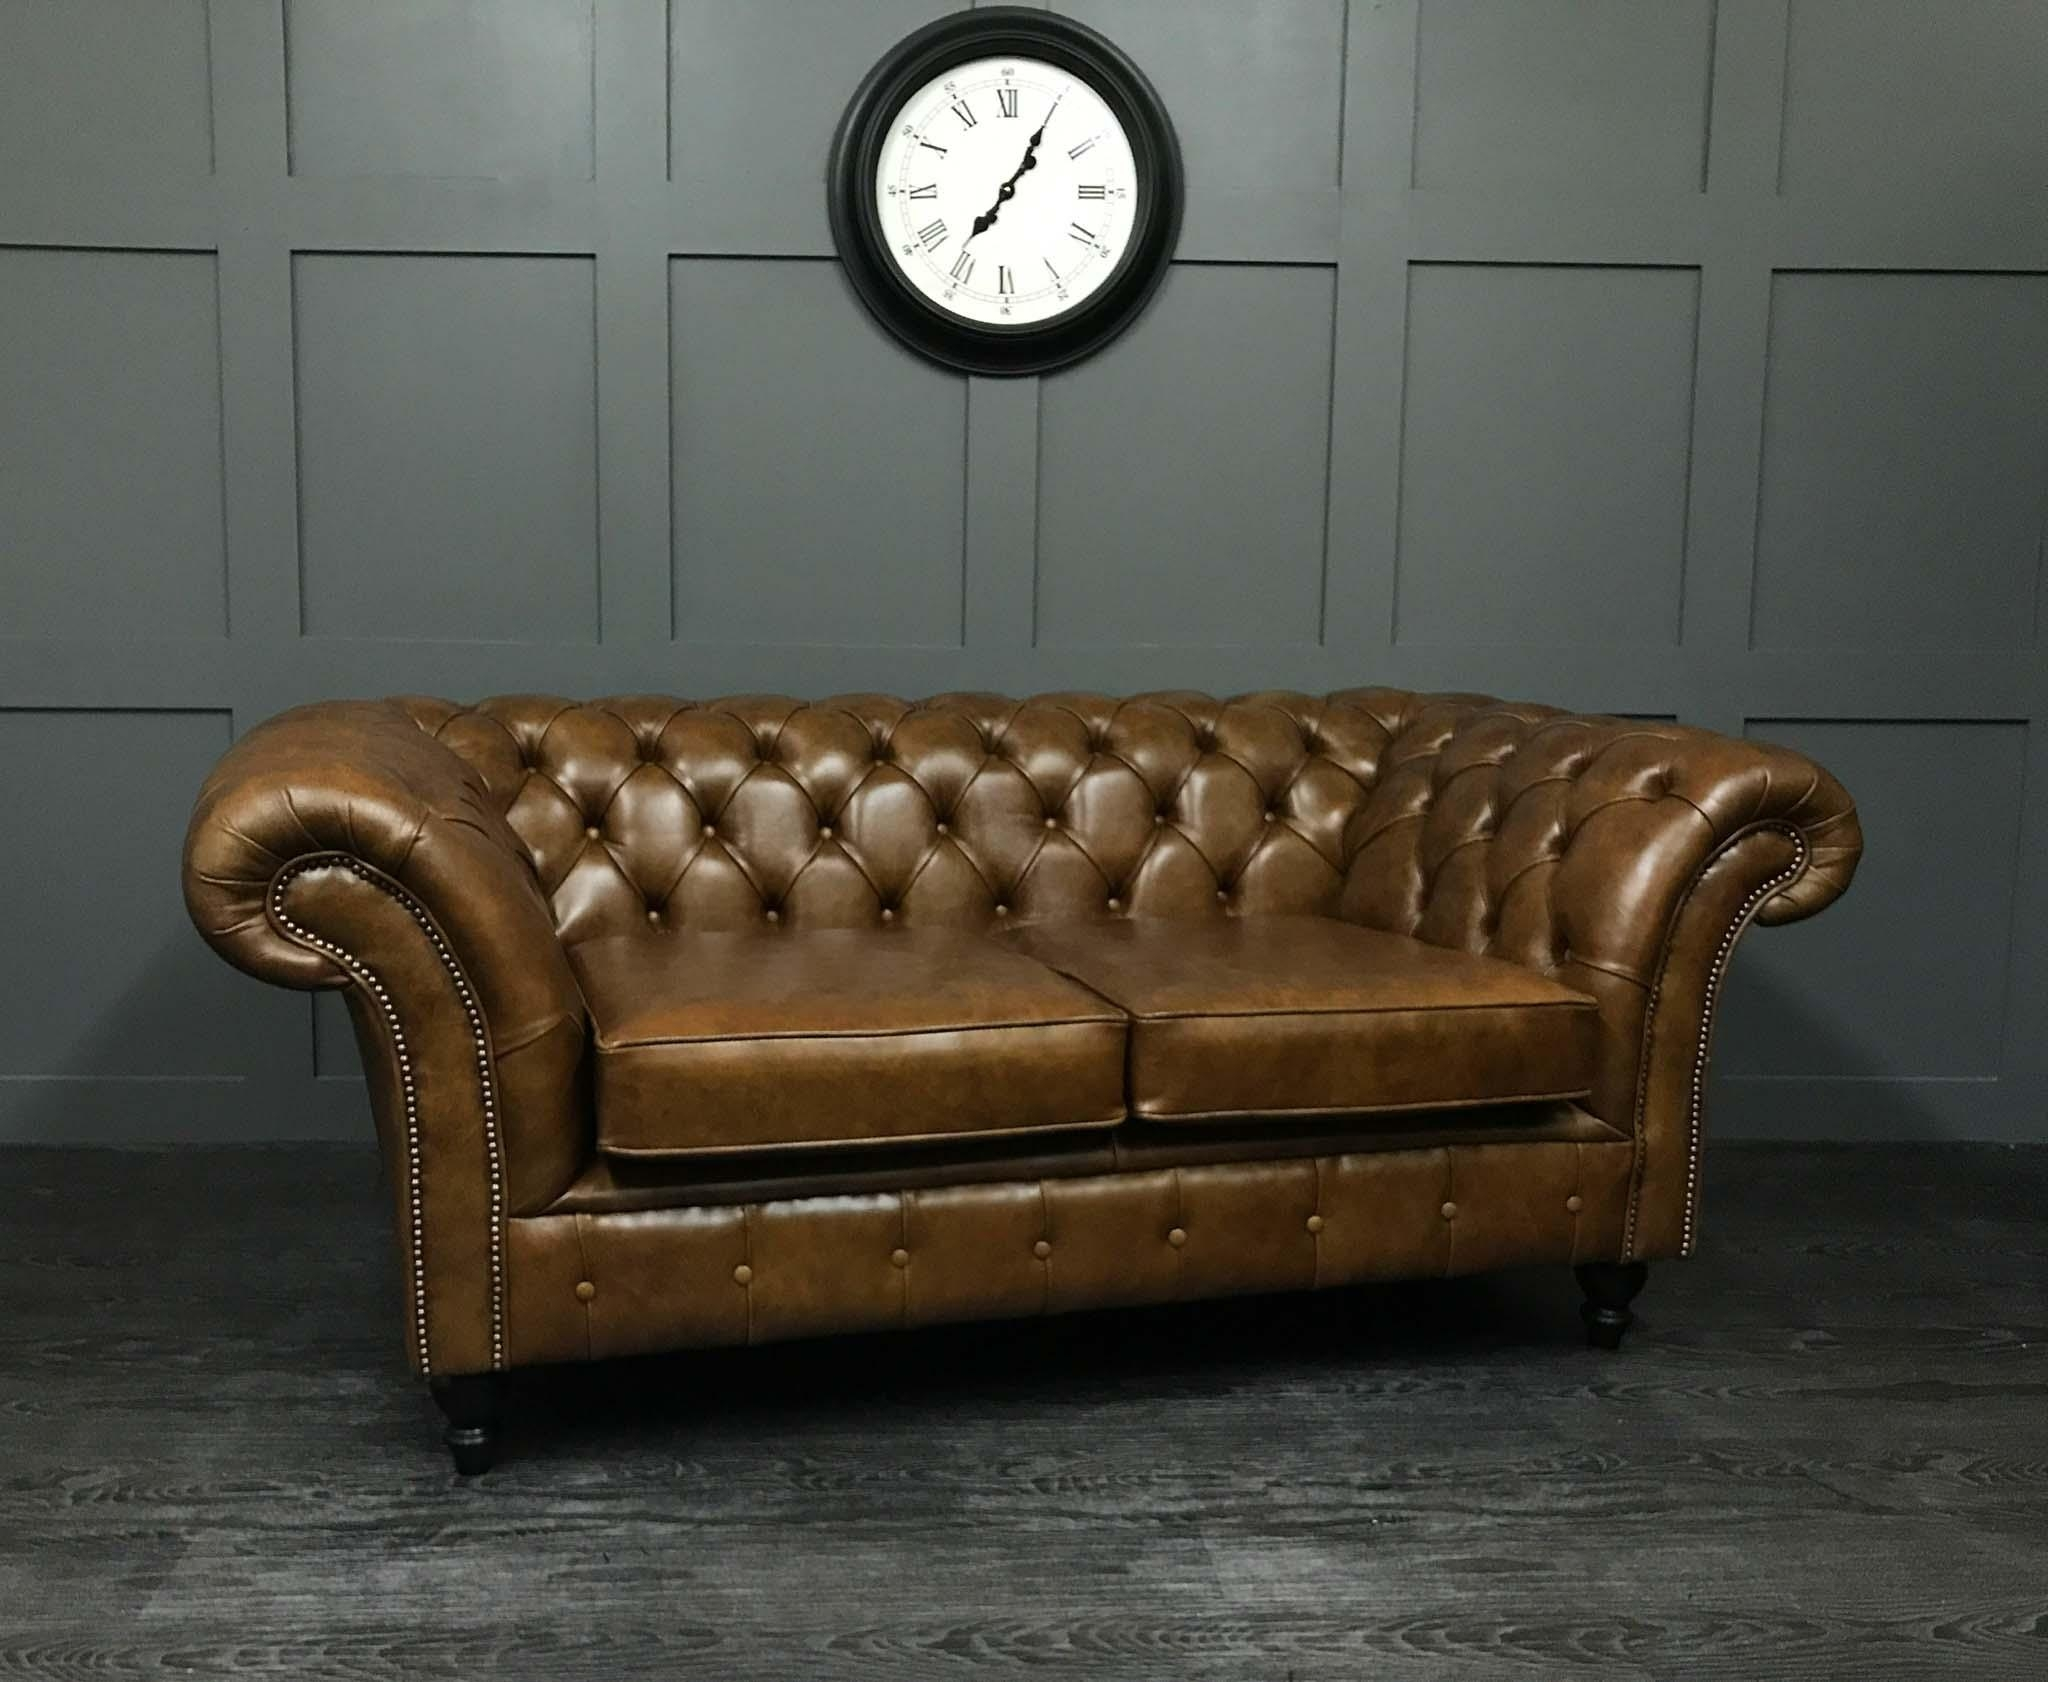 Chesterfield Sofas Archives – Timeless Sofas – Handmade Leather For Leather Chesterfield Sofas (Image 6 of 20)